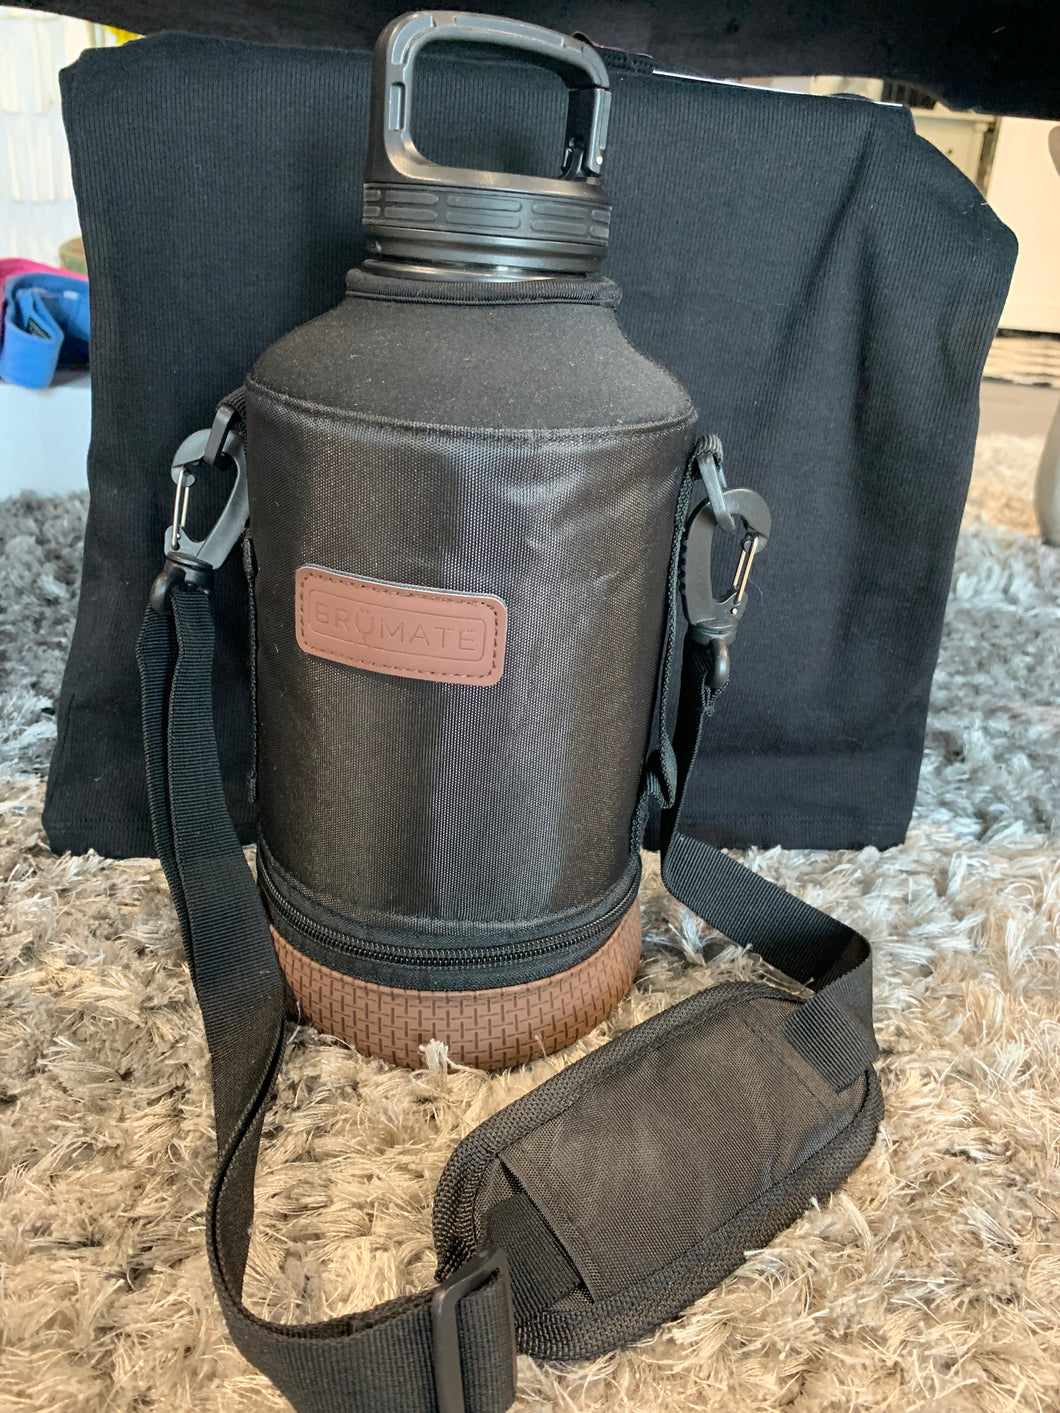 Brumate Growler Bag